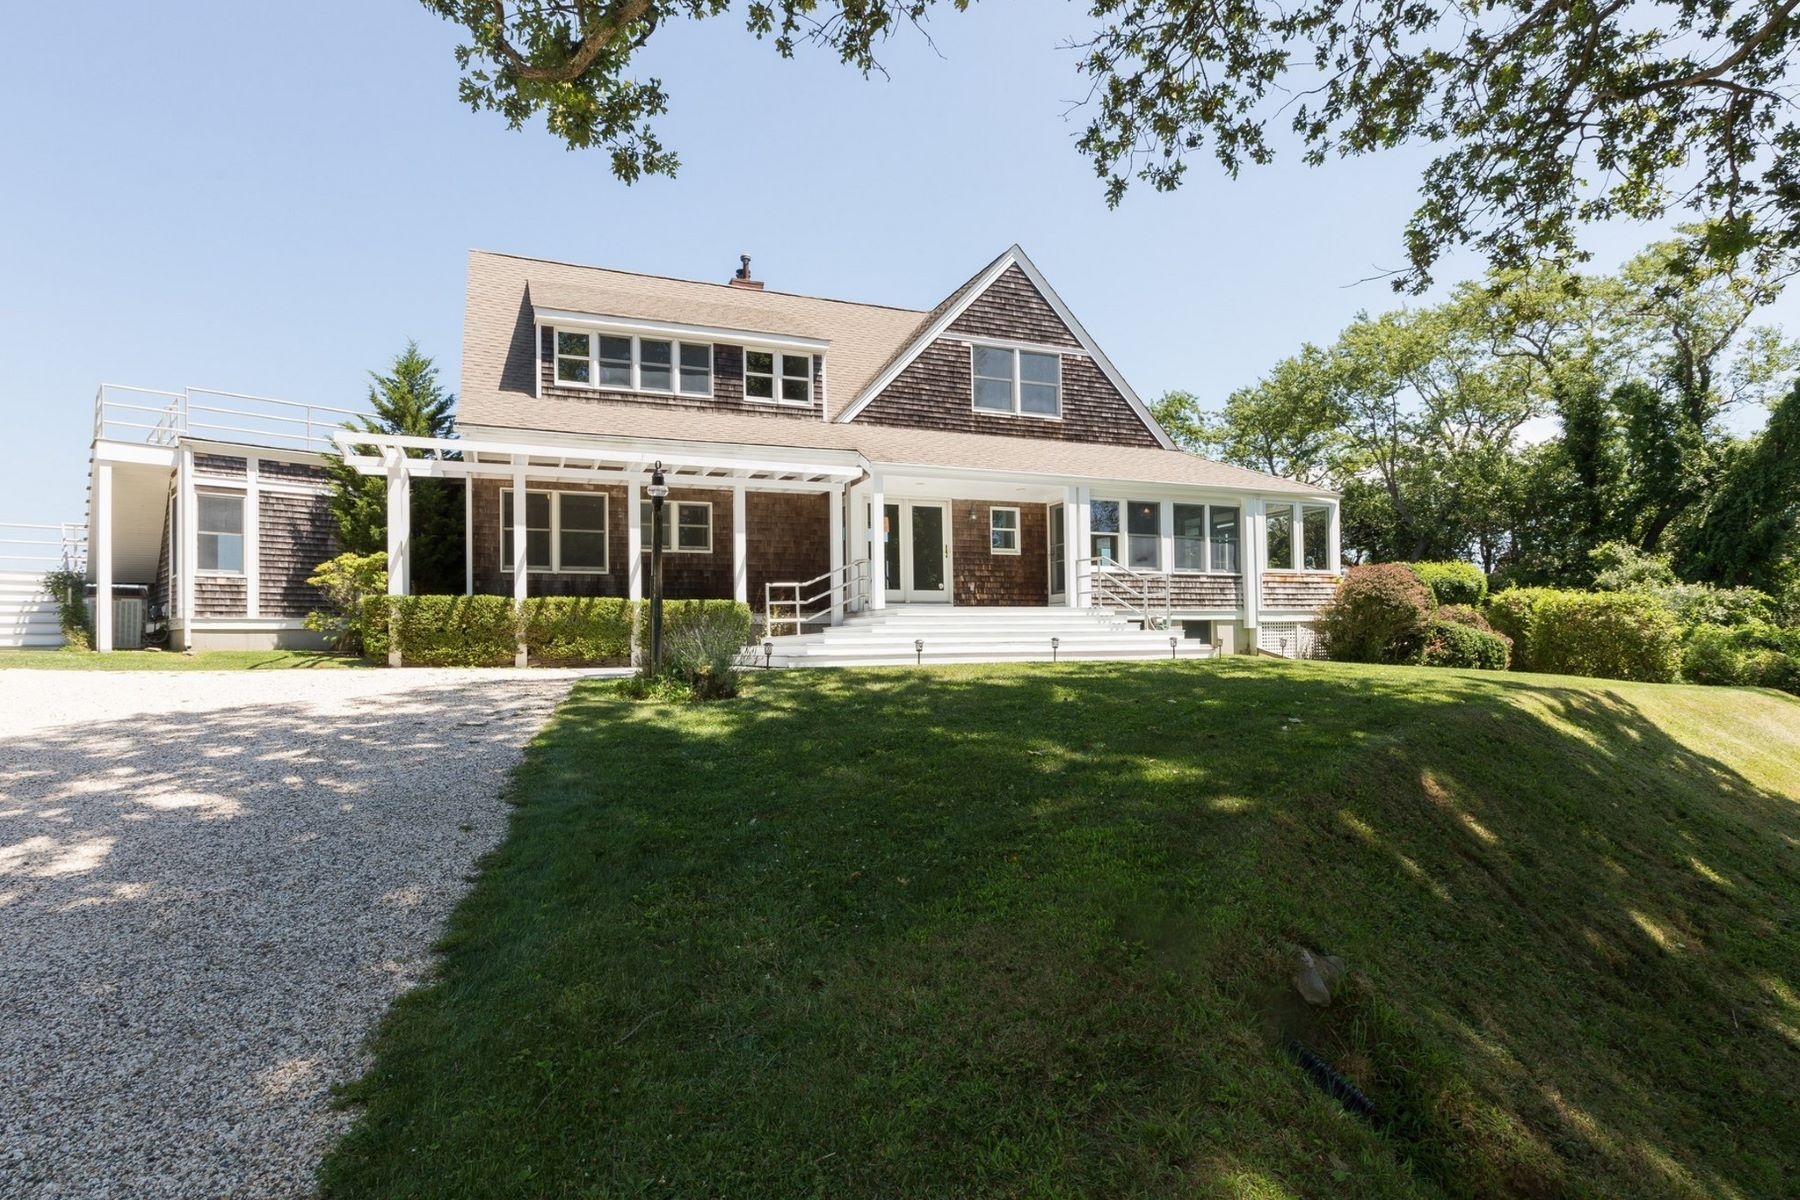 Single Family Home for Active at 85 Ram Island Dr , Shelter Island, NY 11964 85 & 90 Ram Island Dr Shelter Island, New York 11964 United States